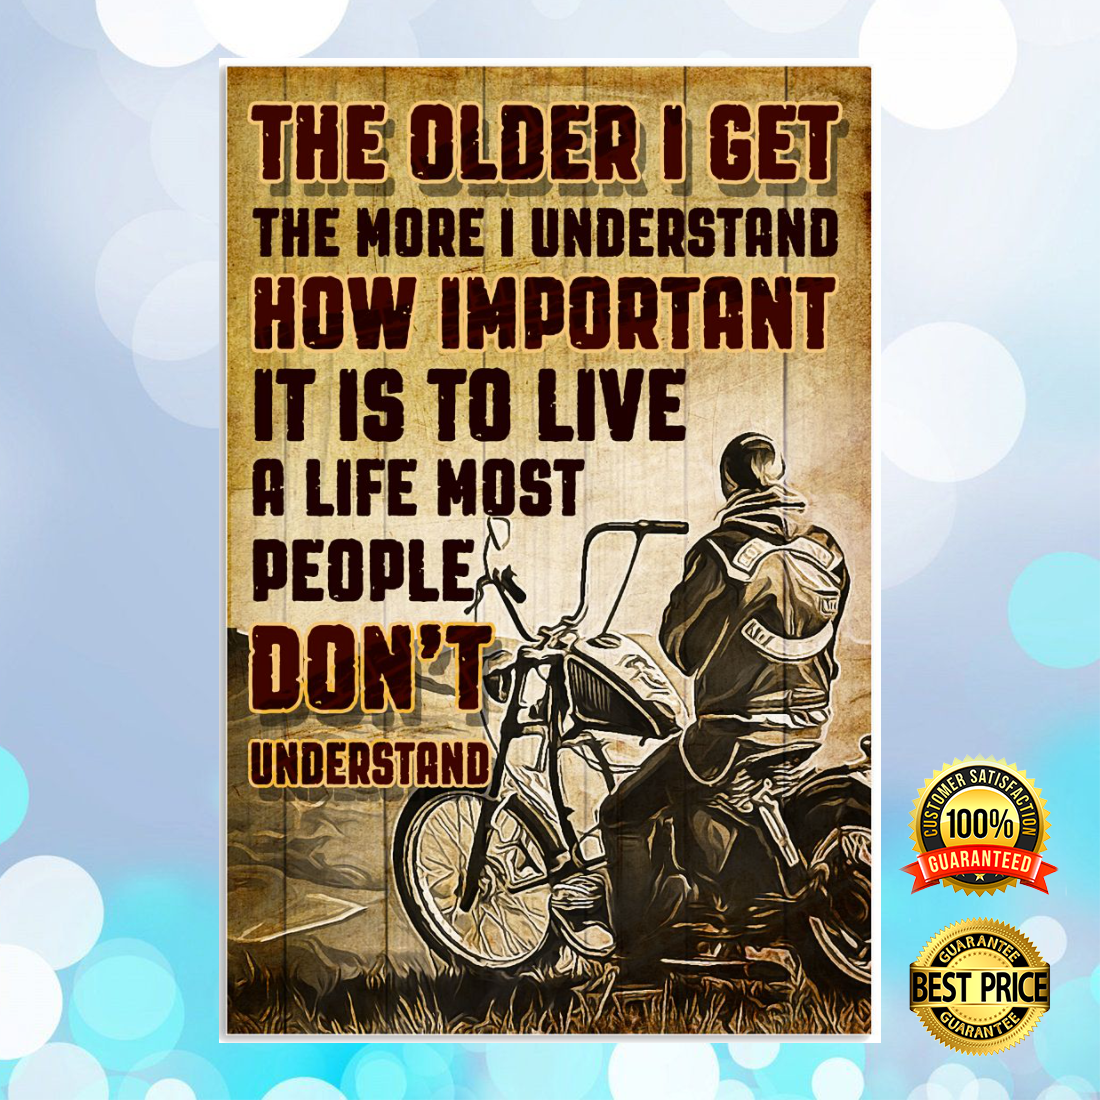 MOTORCYCLE THE OLDER I GET THE MORE I UNDERSTAND HOW IMPORTANT IT IS TO LIVE A LIFE MOST PEOPLE DON'T UNDERSTAND POSTER 6